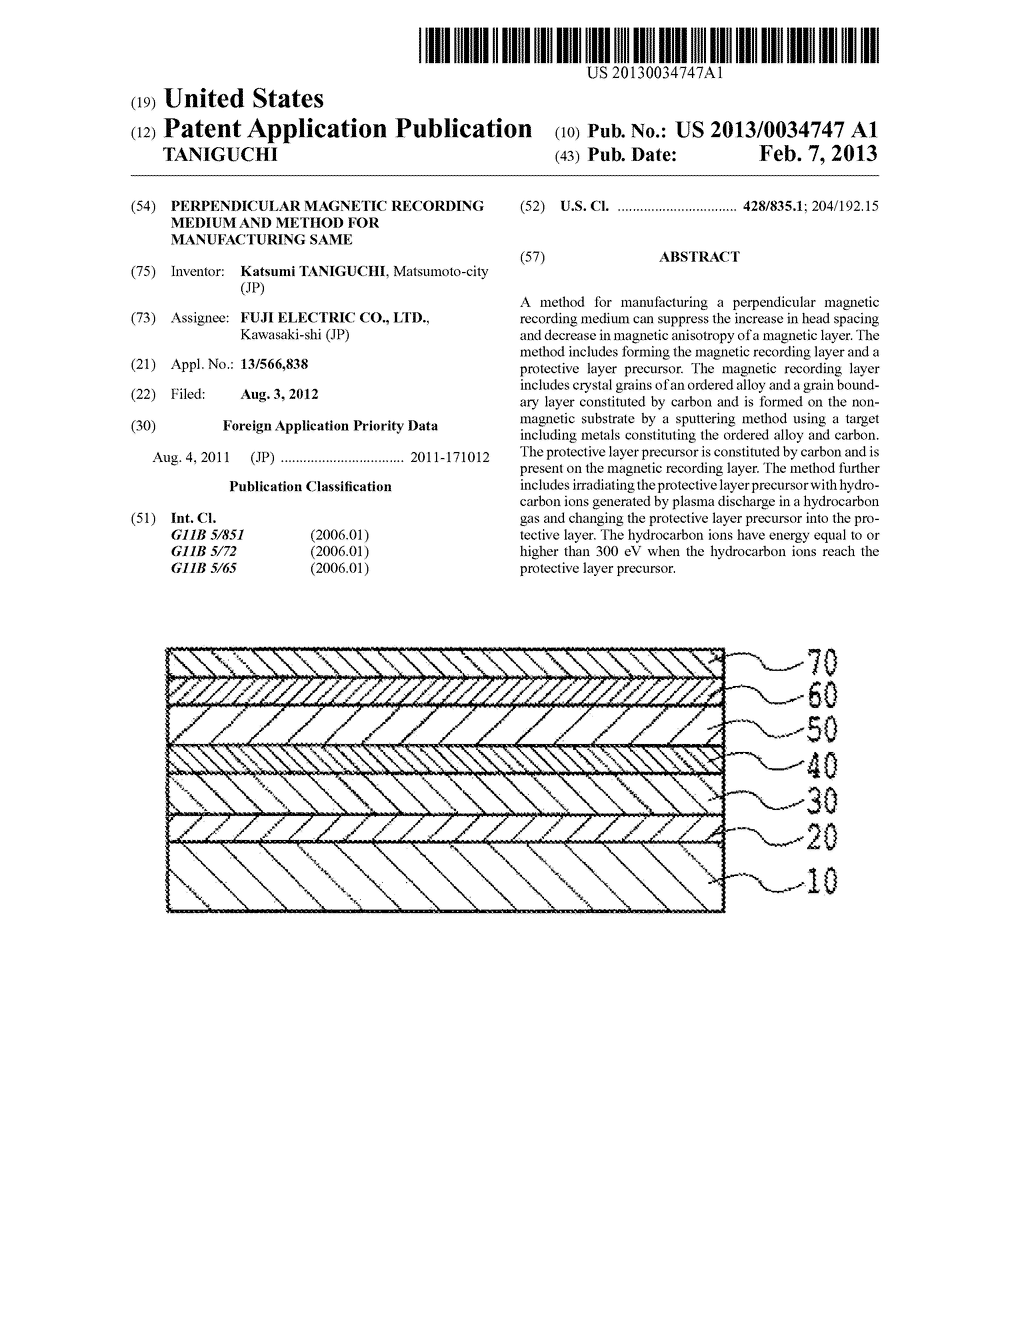 PERPENDICULAR MAGNETIC RECORDING MEDIUM AND METHOD FOR MANUFACTURING SAME - diagram, schematic, and image 01